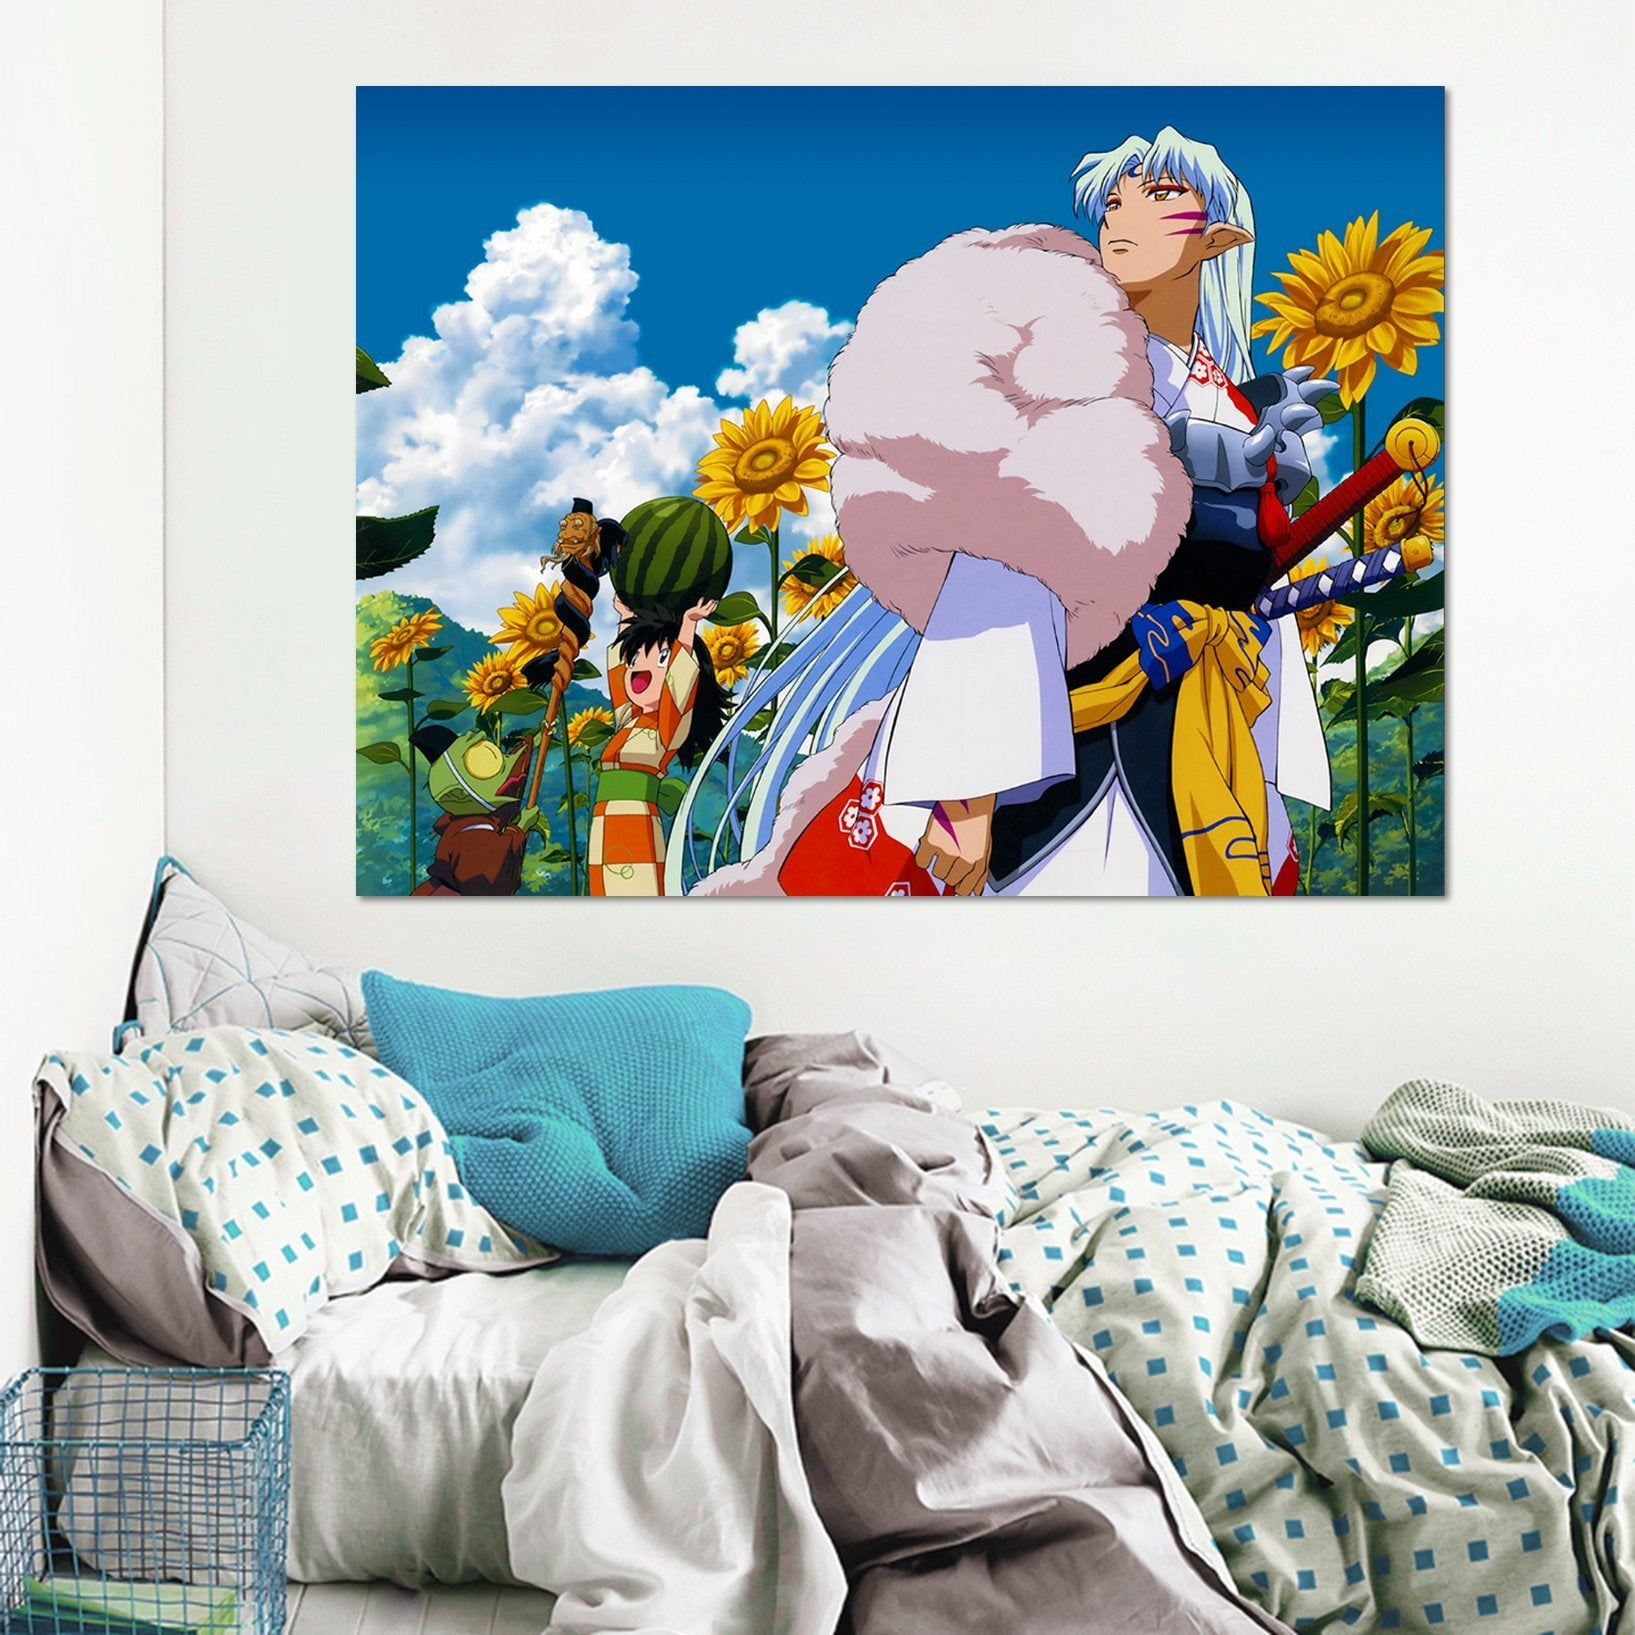 3D Inuyasha 7981 Anime Wall Stickers Wallpaper AJ Wallpaper 2